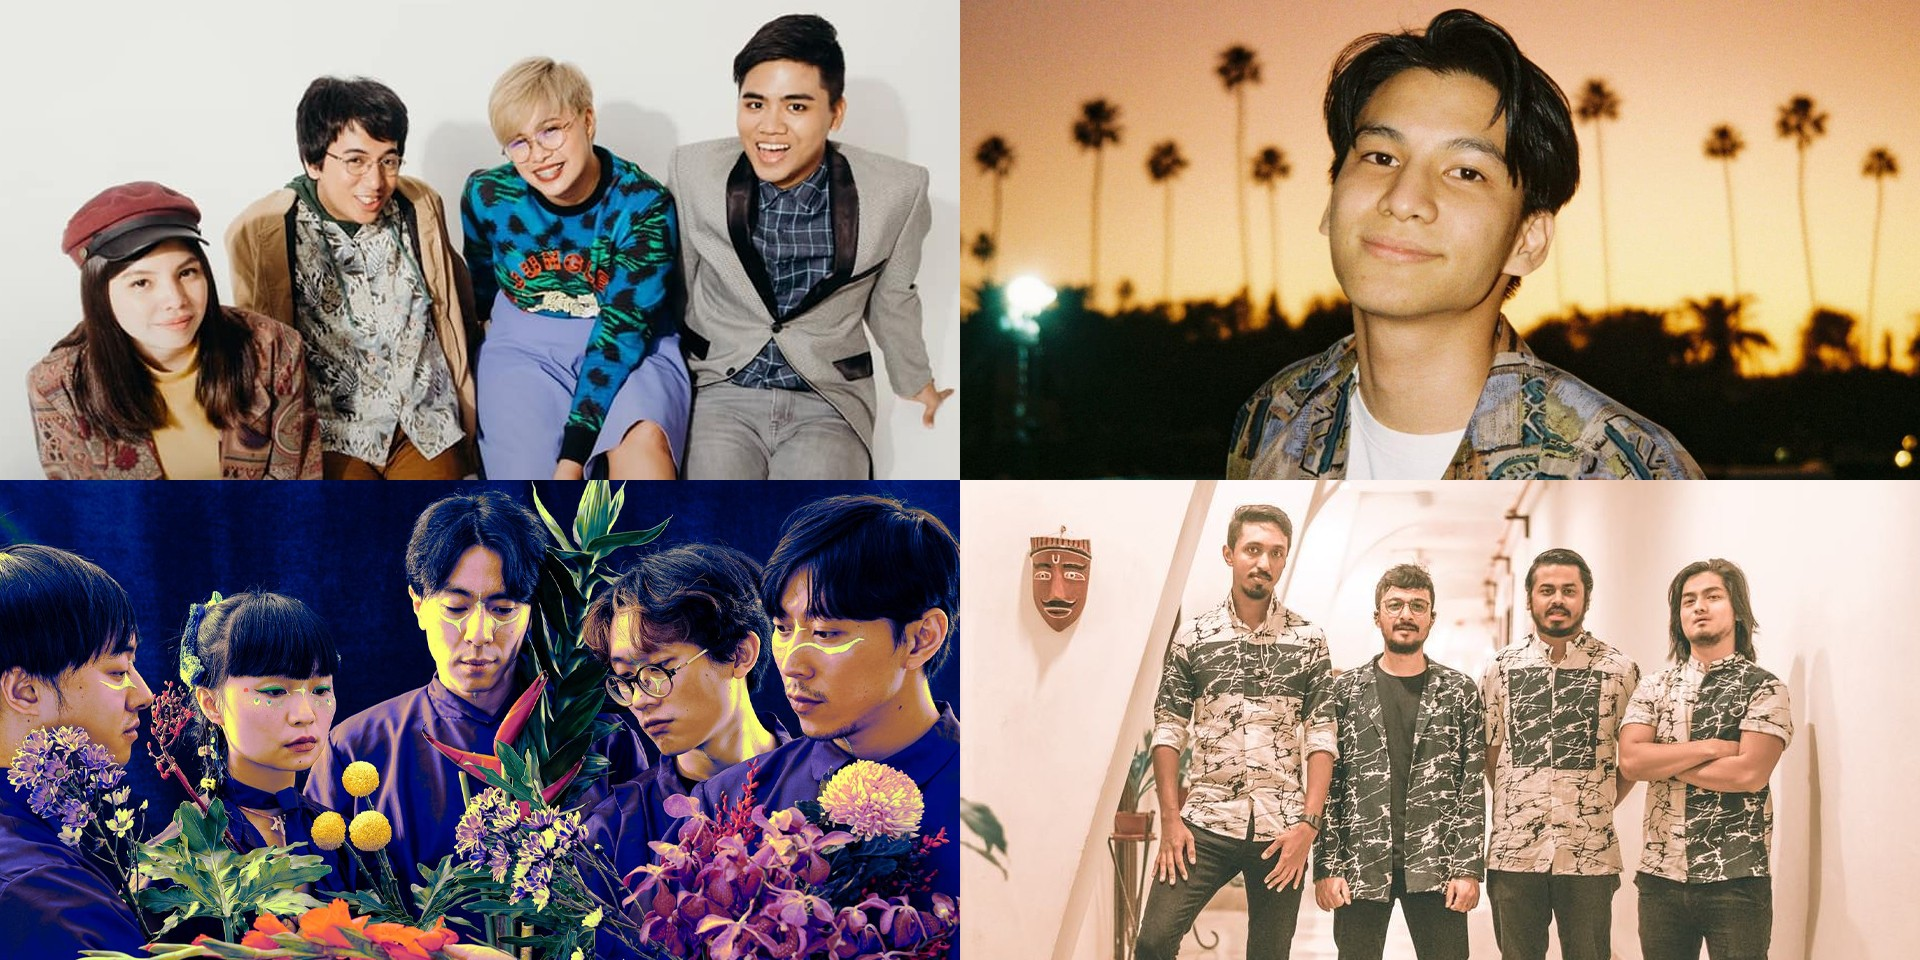 Here are 10 Audiotree Live performances featuring Asian acts you shouldn't miss